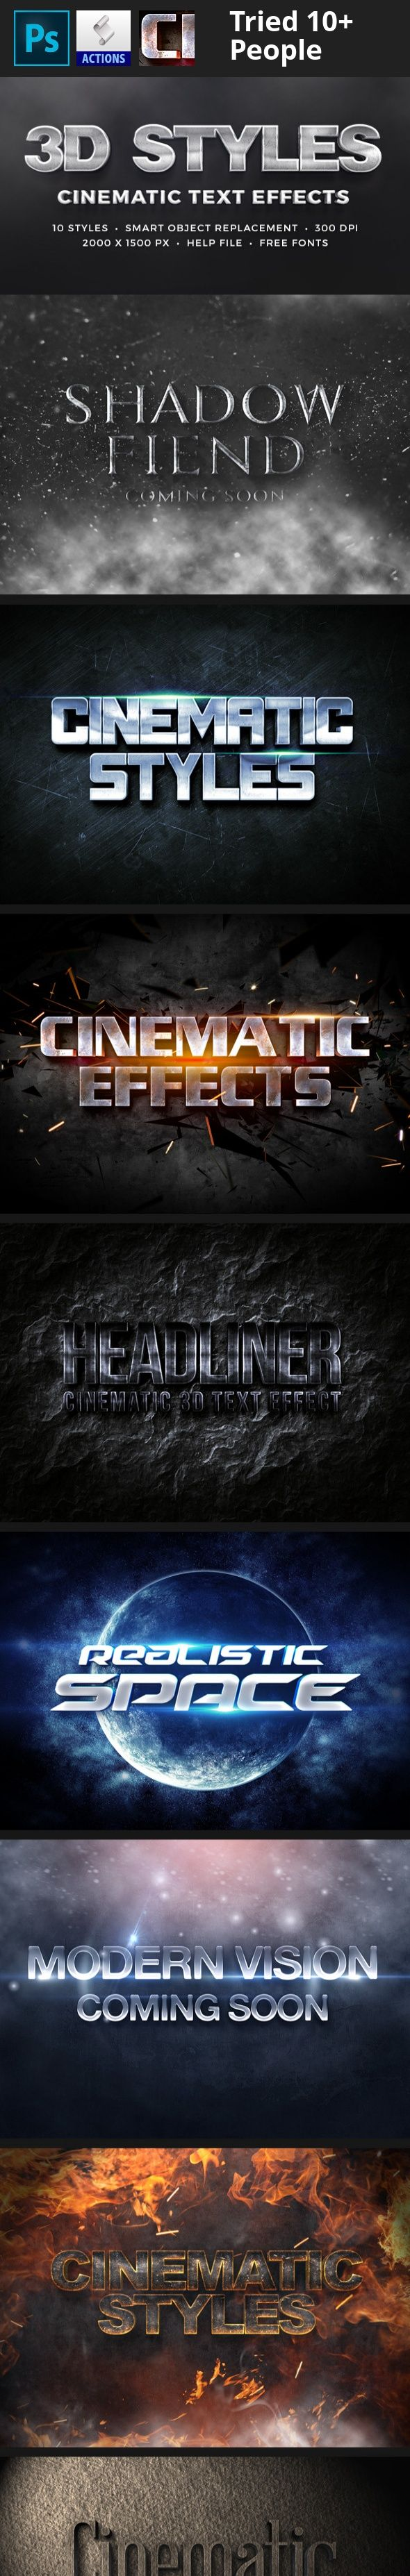 3d, 3d effect, 3d generator, 3d logo mock up, 3d mock up, 3d styles, 3d text, 3d text style, add one, cinema, cinematic, film, film actions, film text, film title, grunge, intro text styles, layer styles, metal text, movie, photorealistic, photoshop 3d effect, photoshop 3d style, realistic, retro, stone, text actions, text styles, typography, vintage Featurs      10 Fully layered PSDs     Background textures included     Smart object replacement     Super easy to edit text and elements…